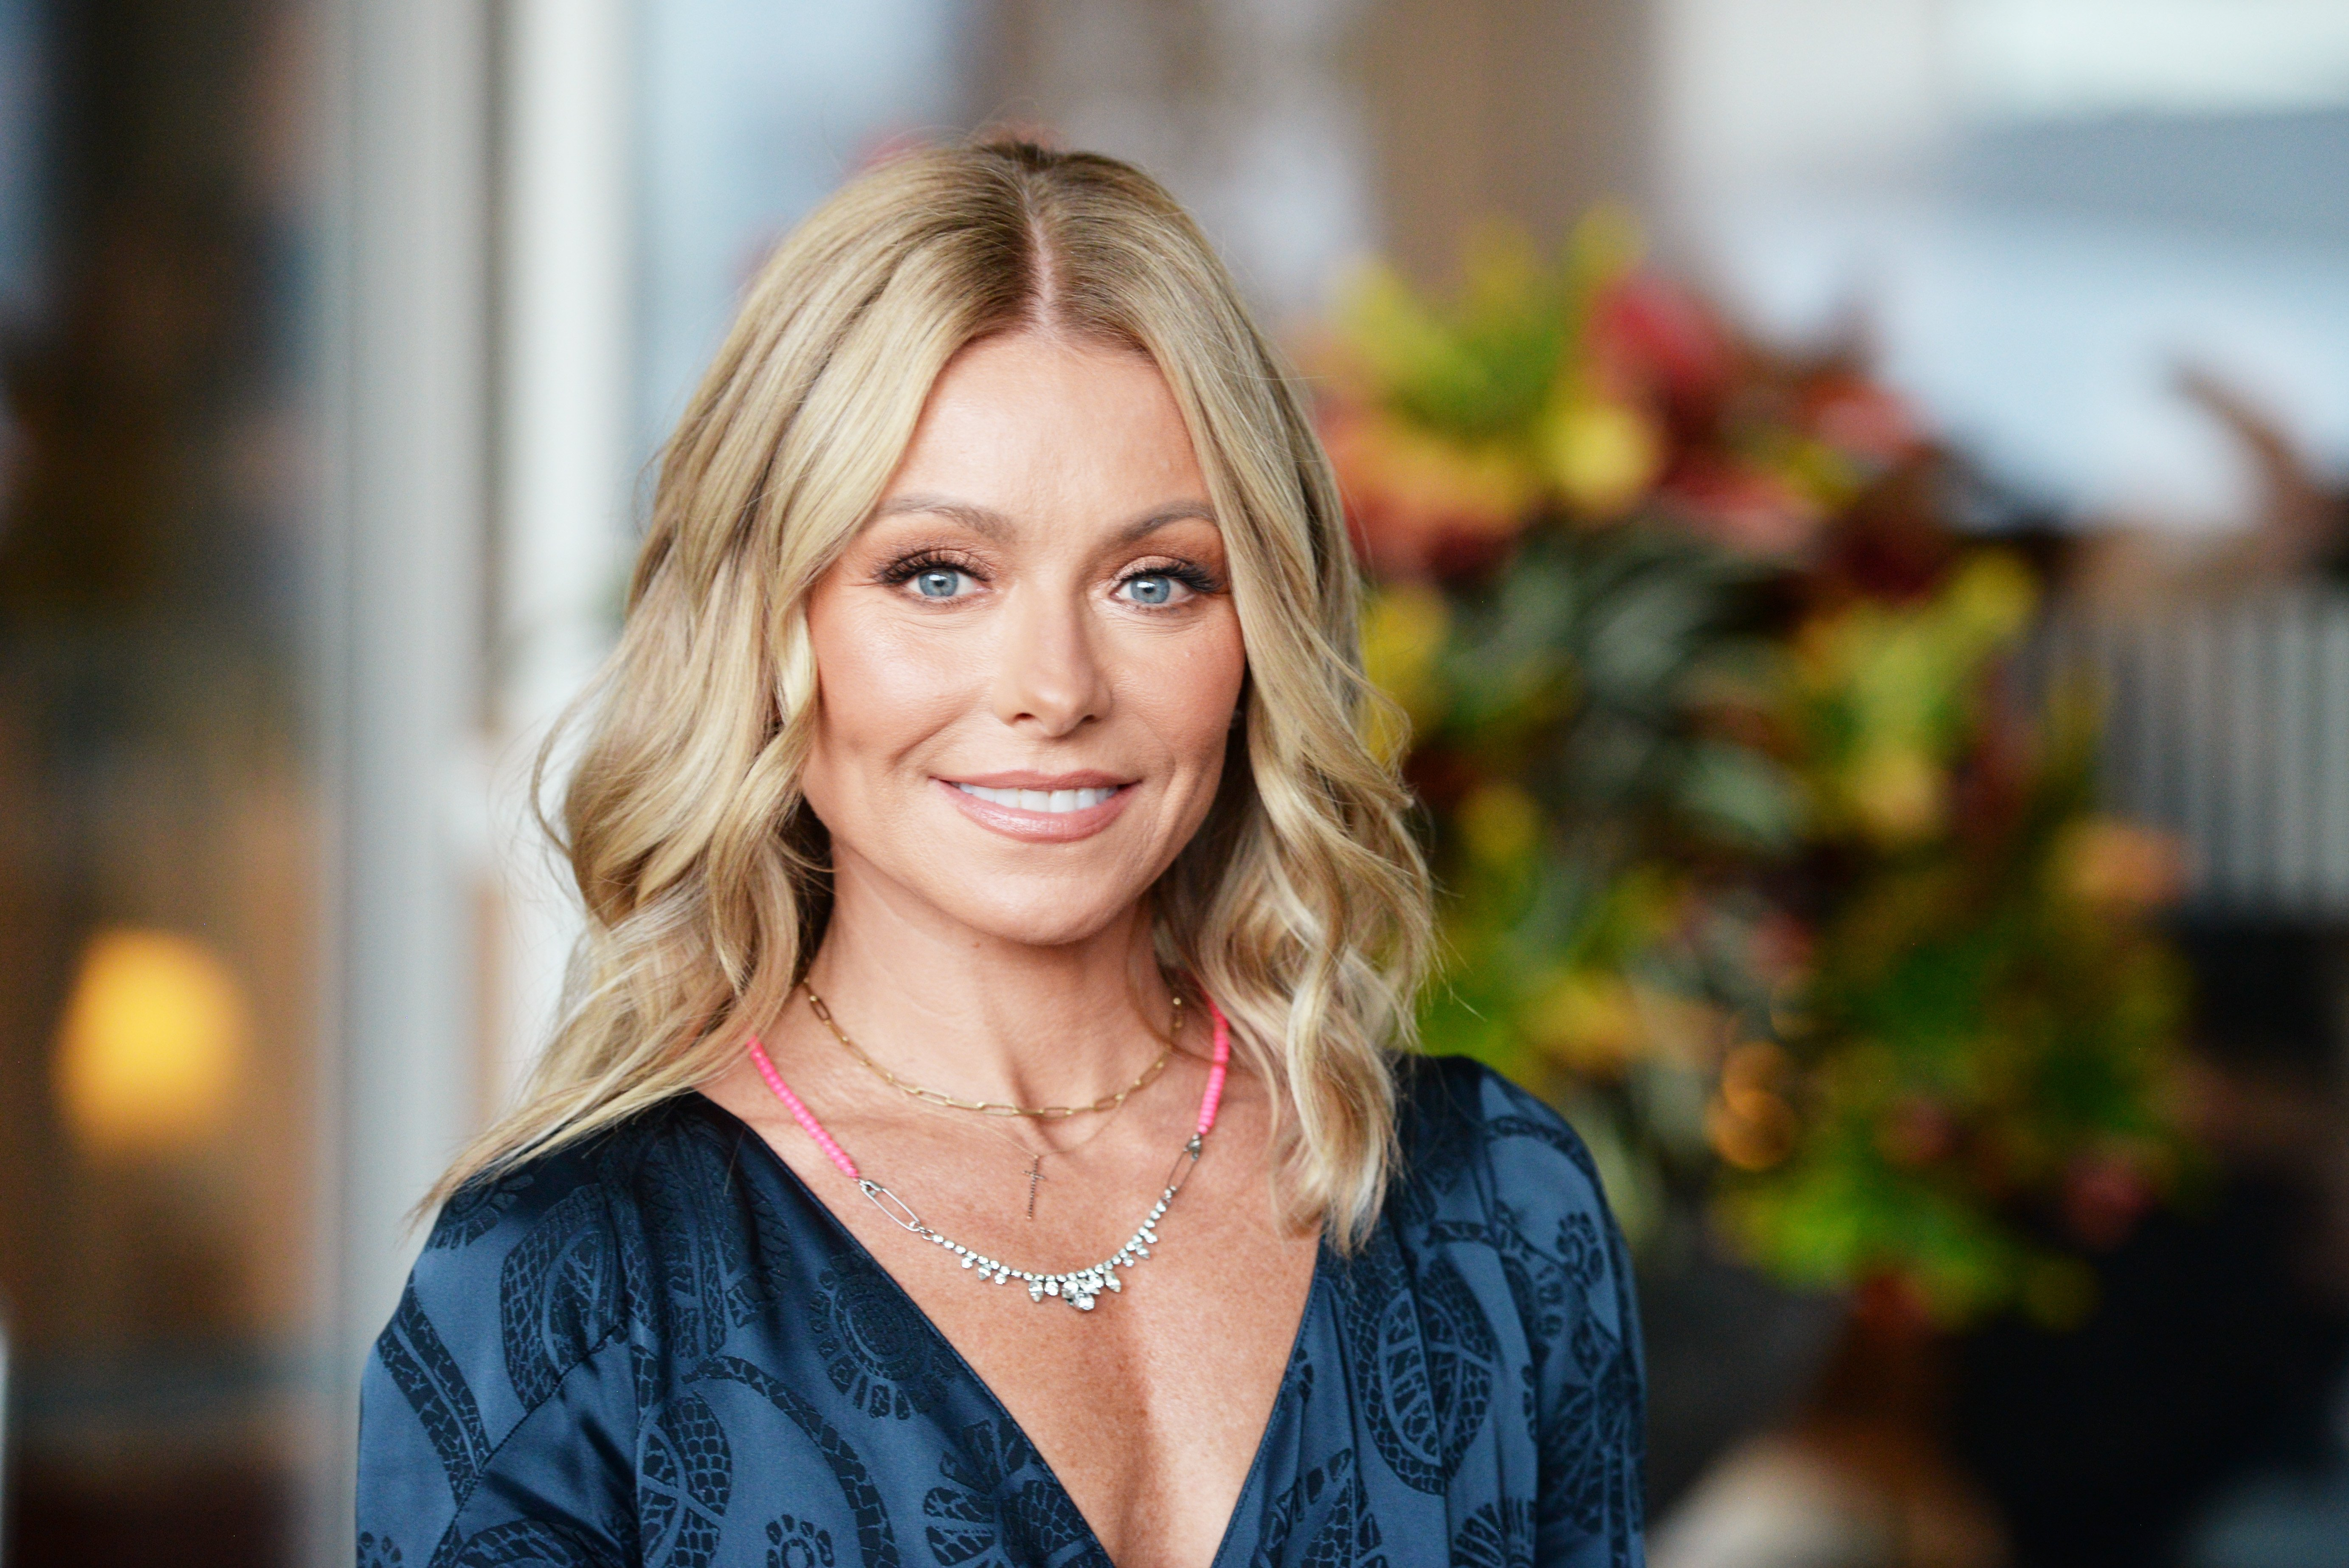 Kelly Ripa attends the 49th Anniversary Gala Vanguard Awards on September 22, 2018, in Beverly Hills, California. | Source: Getty Images.